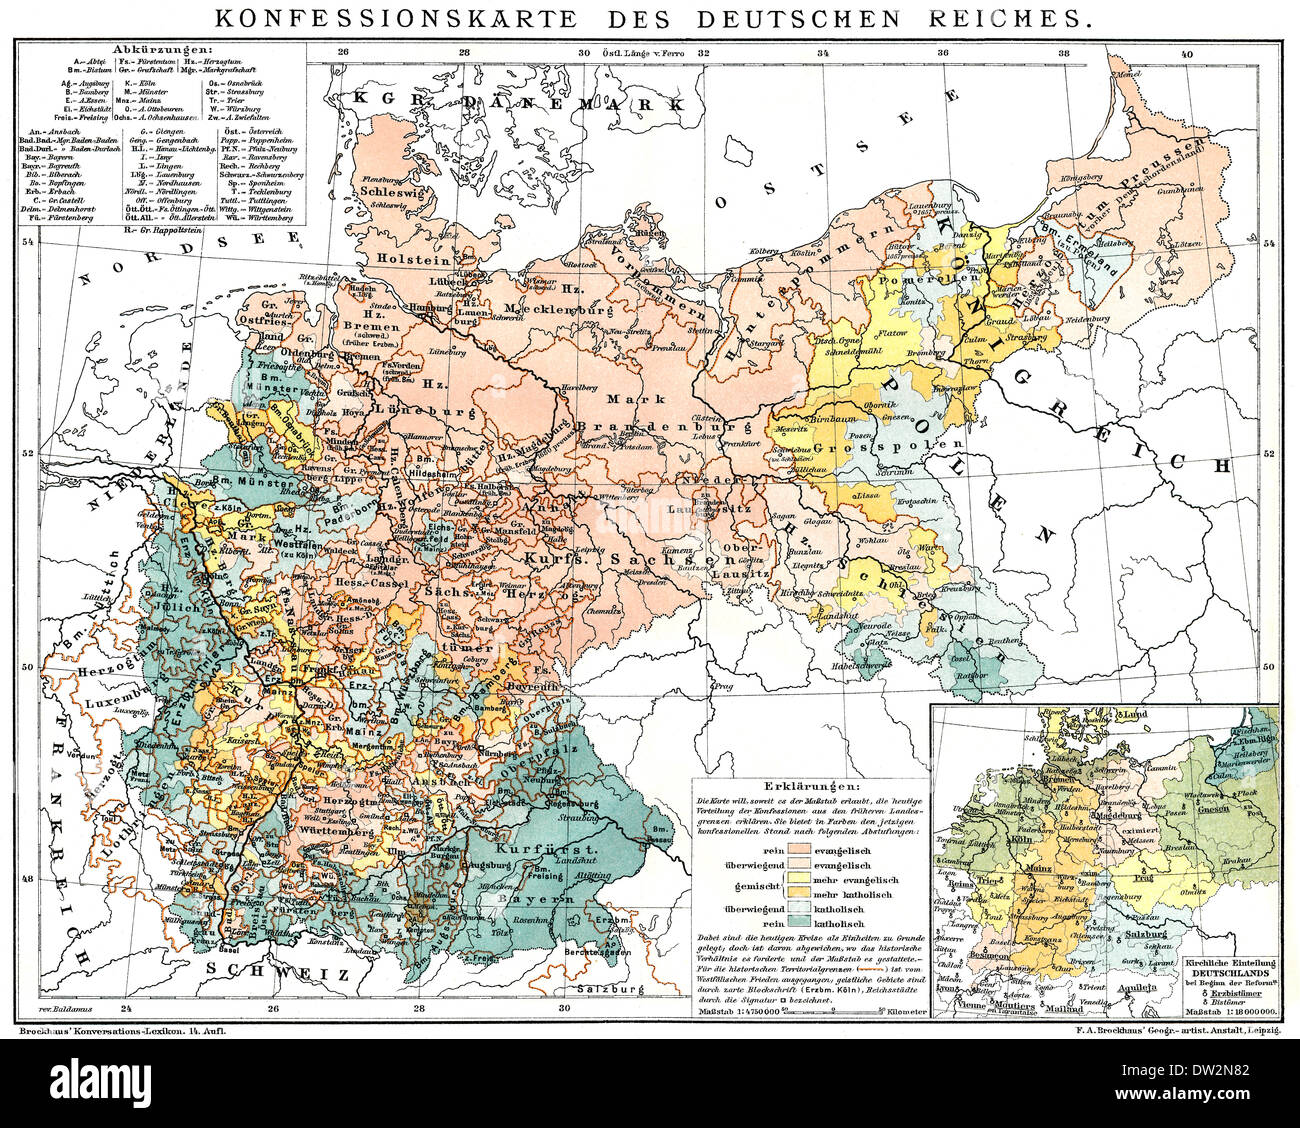 The religious situation in the German Empire about 1895, Religionszugehörigkeit im Deutschen Reich, ca. 1894 - Stock Image